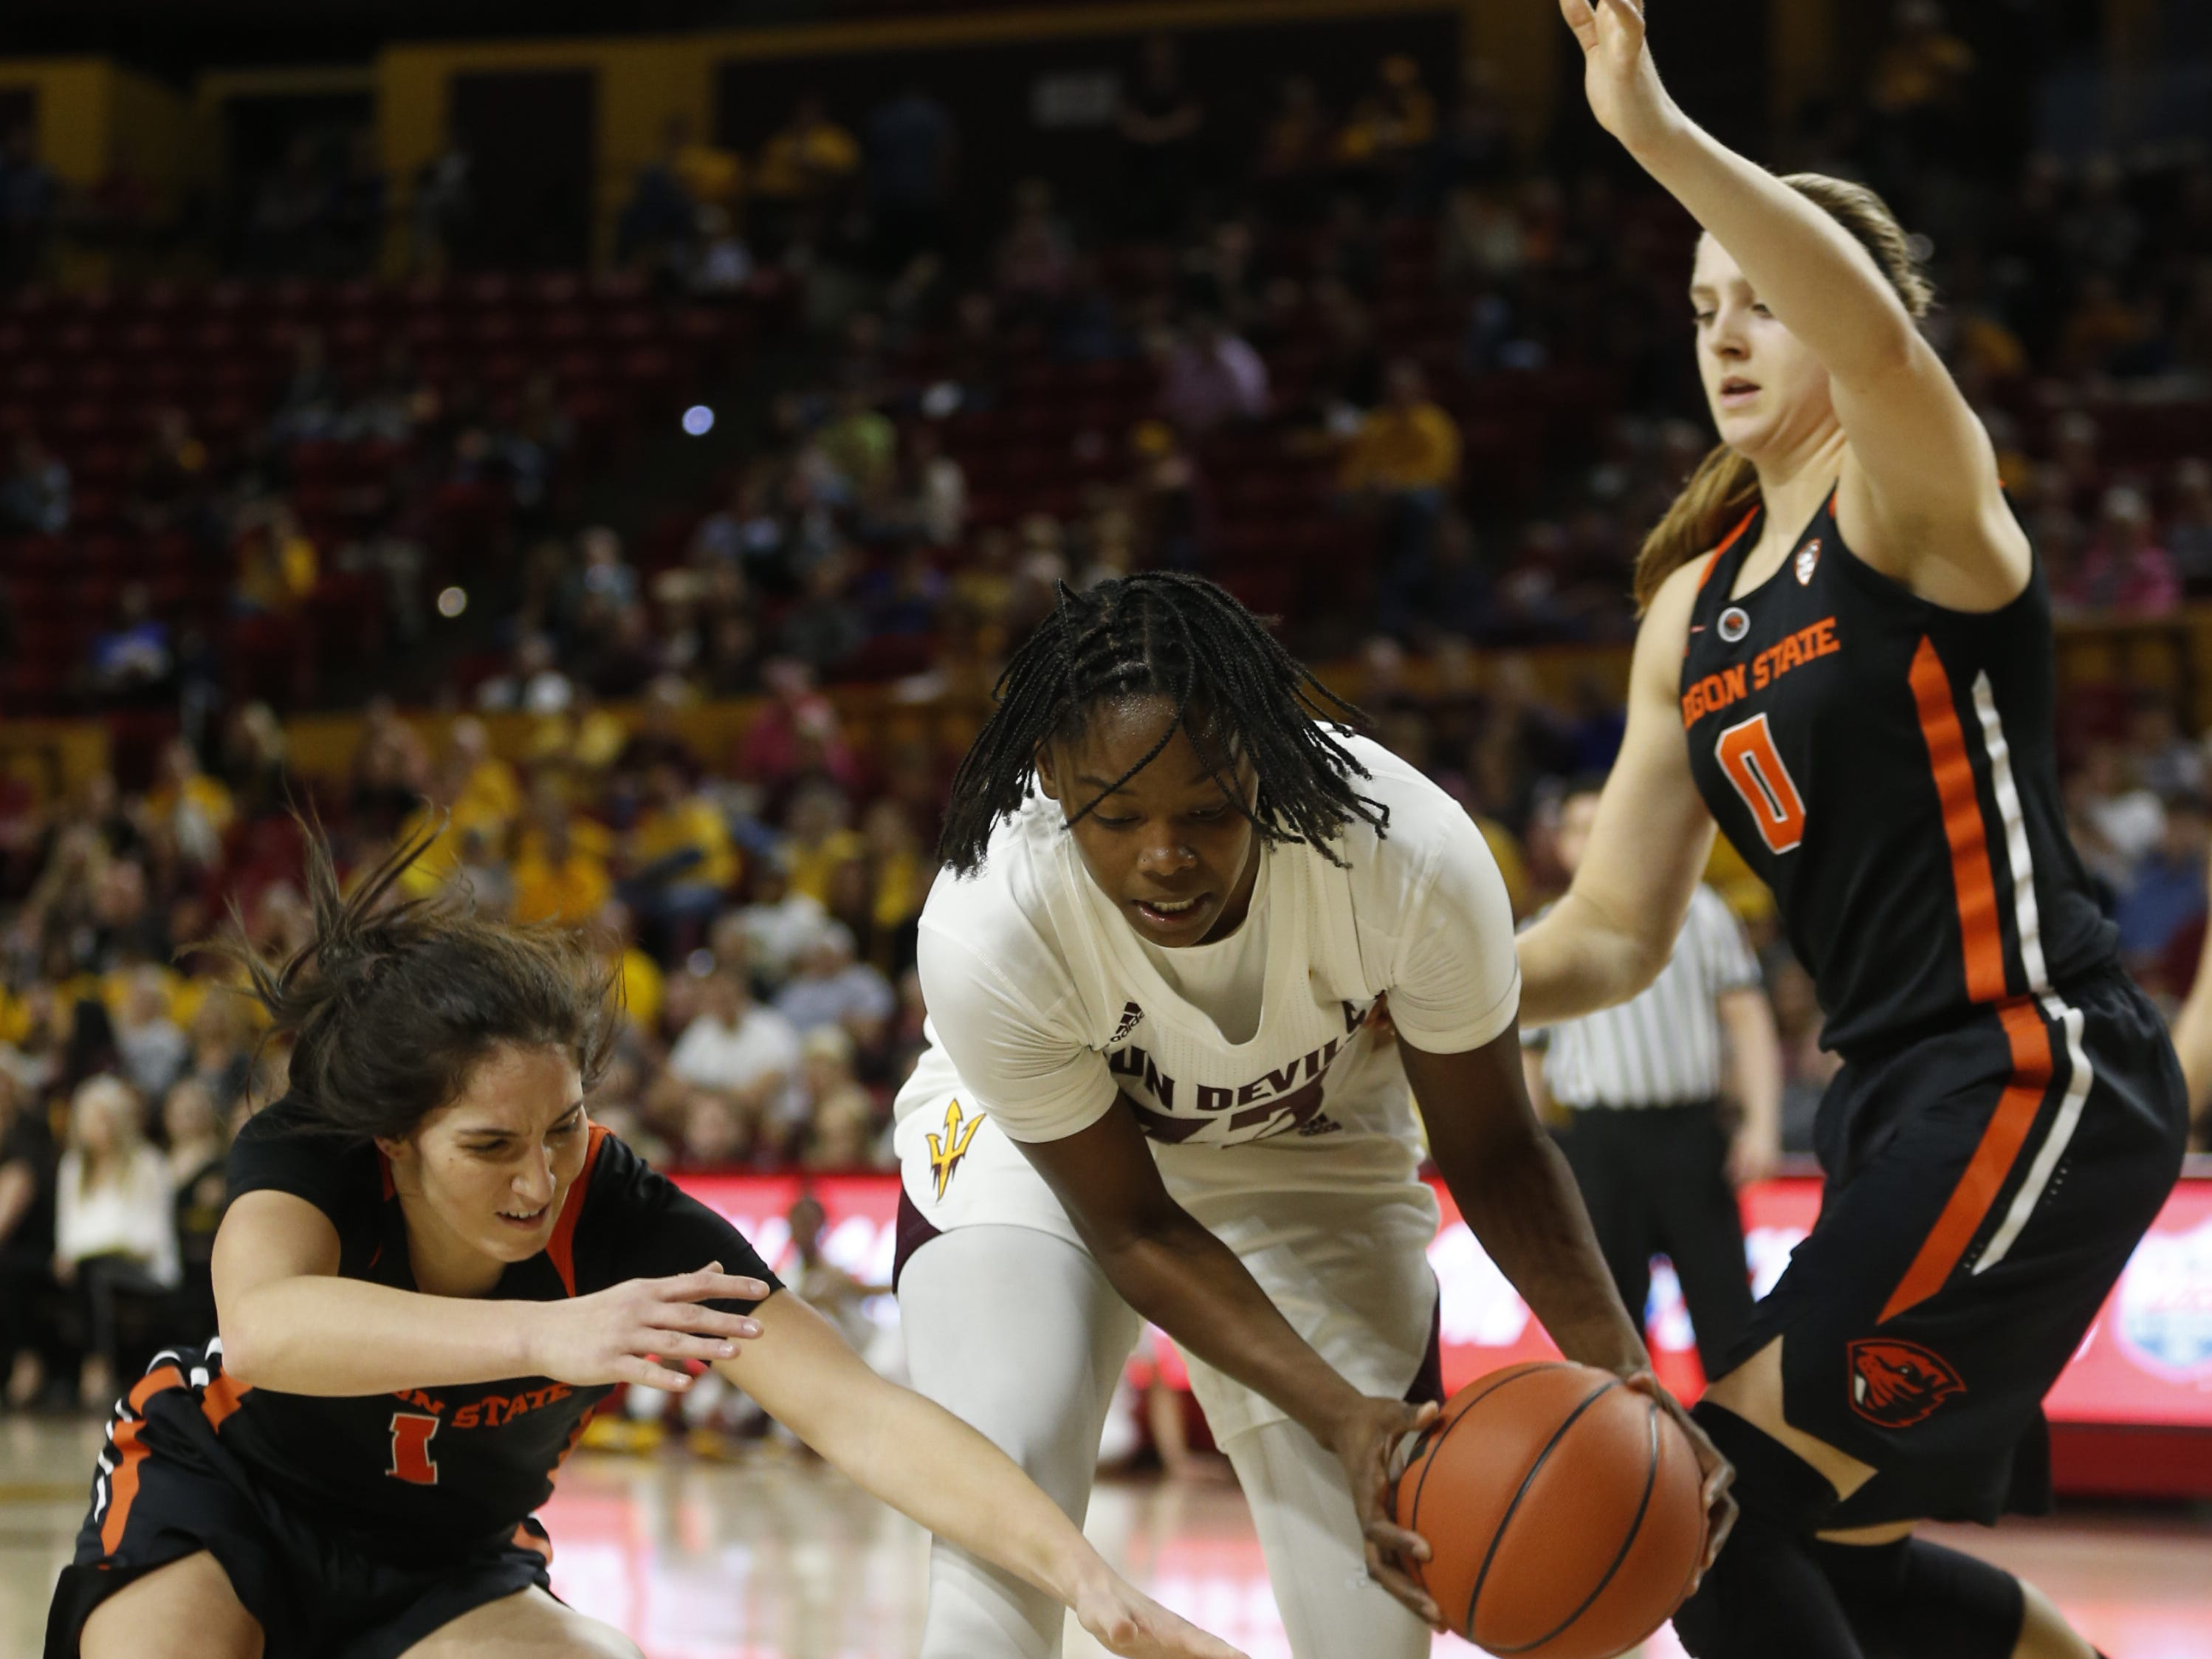 ASU's Charnea Johnson-Chapman (33) recovers a rebound against Oregon State's Mikayla Pivec (0) and Aleah Goodman (1) during the first half at Wells Fargo Arena in Tempe, Ariz. on March 1, 2019.